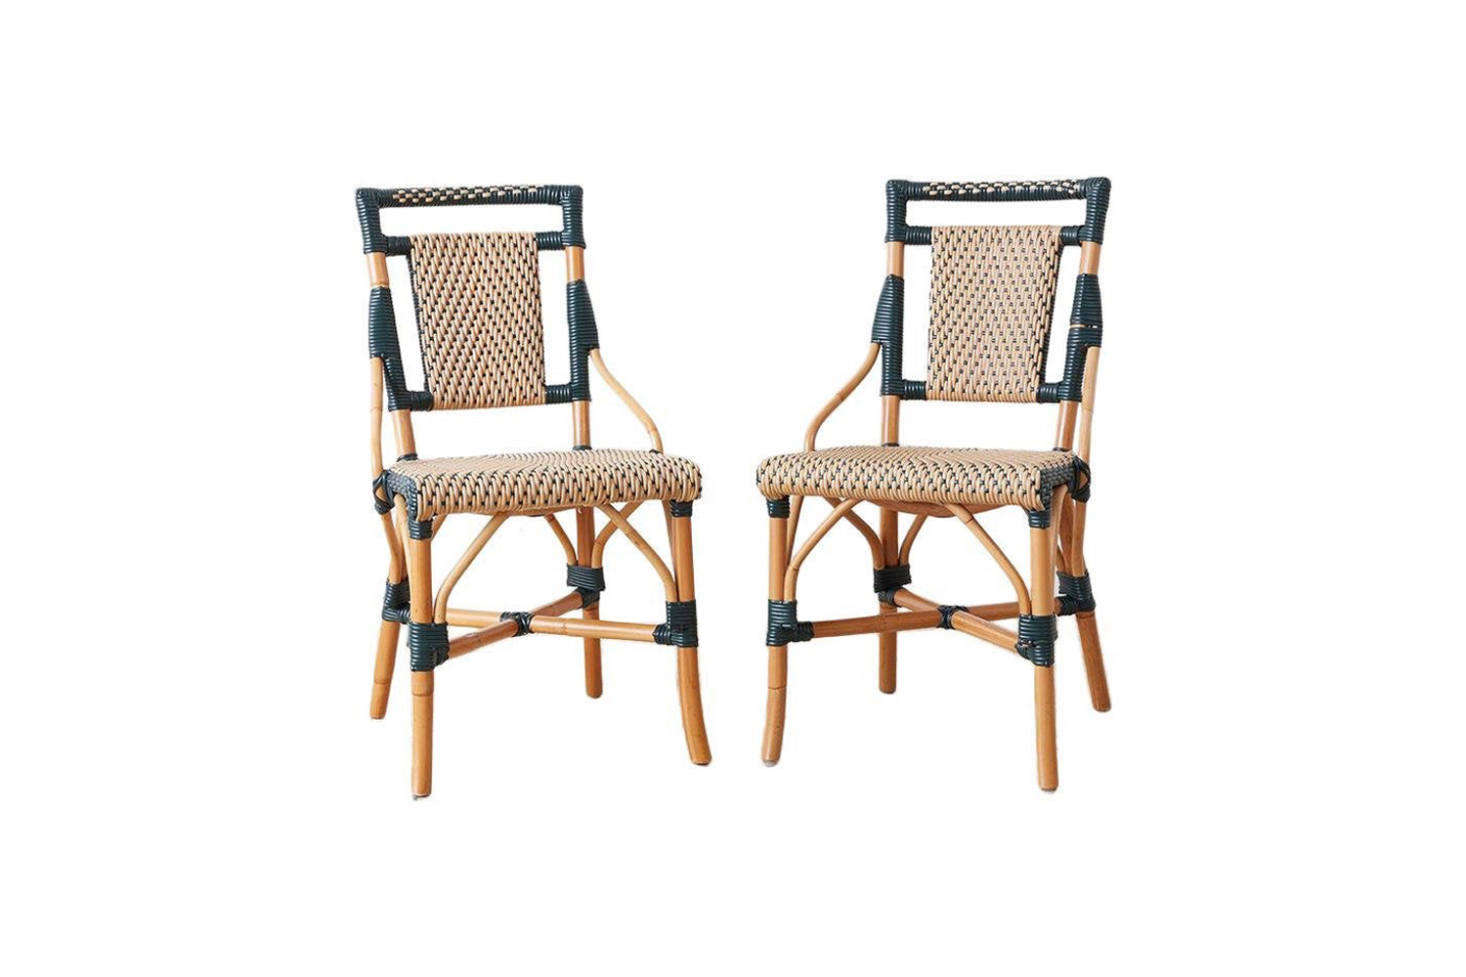 Currently available on Etsy from SF-based vintage dealer Erin Lane Estate: a pair of 1990s Palacek Bamboo Rattan Bistro Chairs; $800.